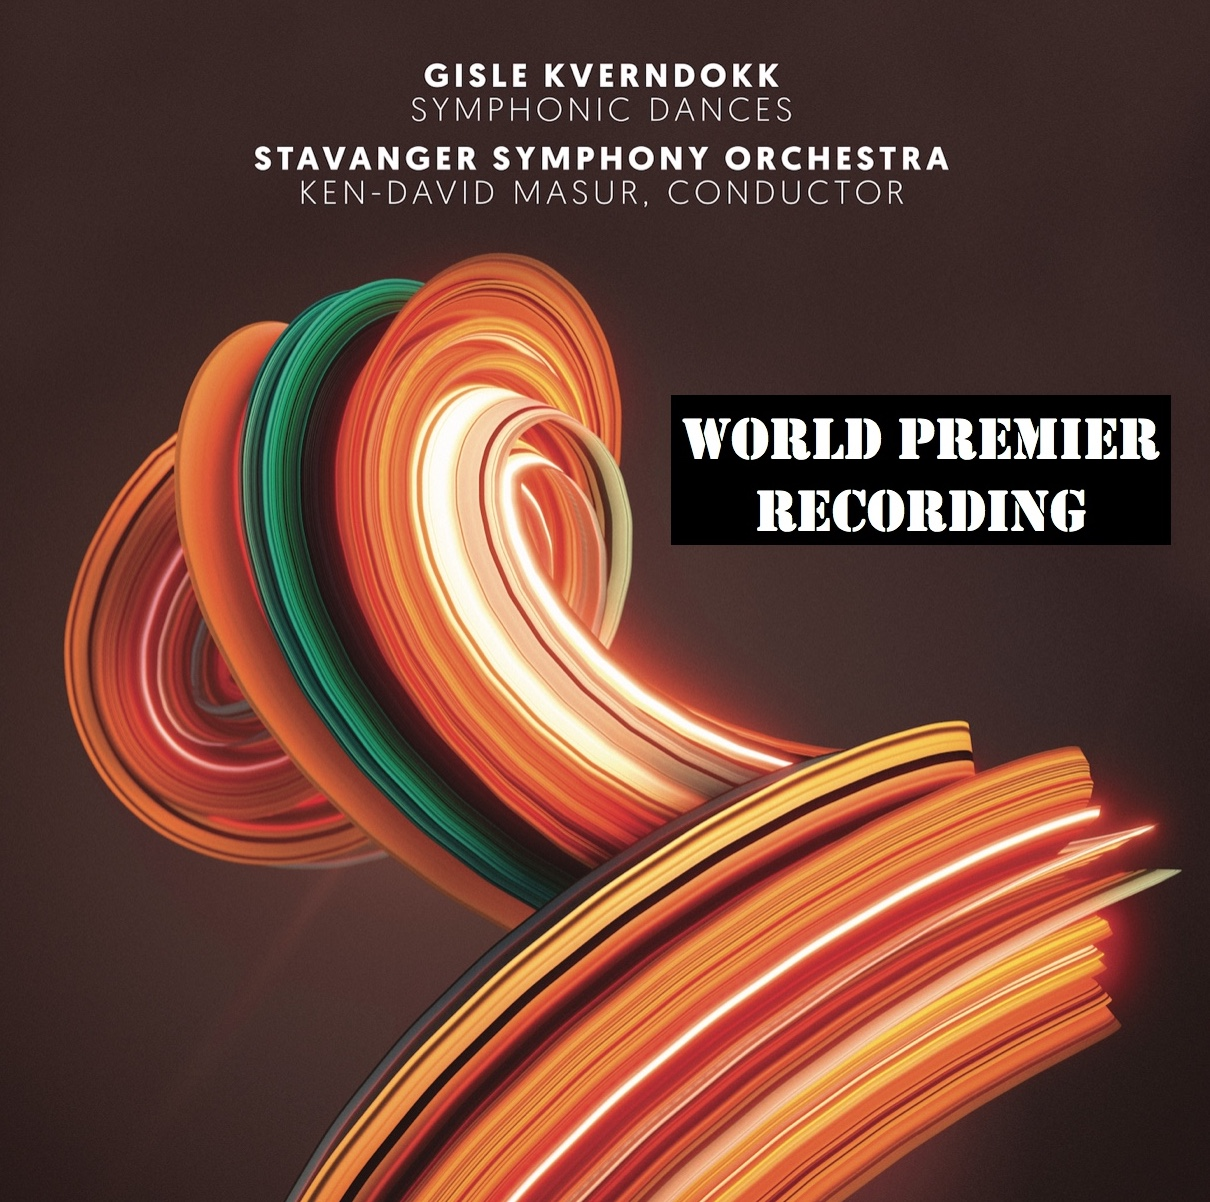 Gisle Kverndokk's Symphonic Dances is  Nominated for a Spellemann Prisen . Production by Anderson Audio NY.